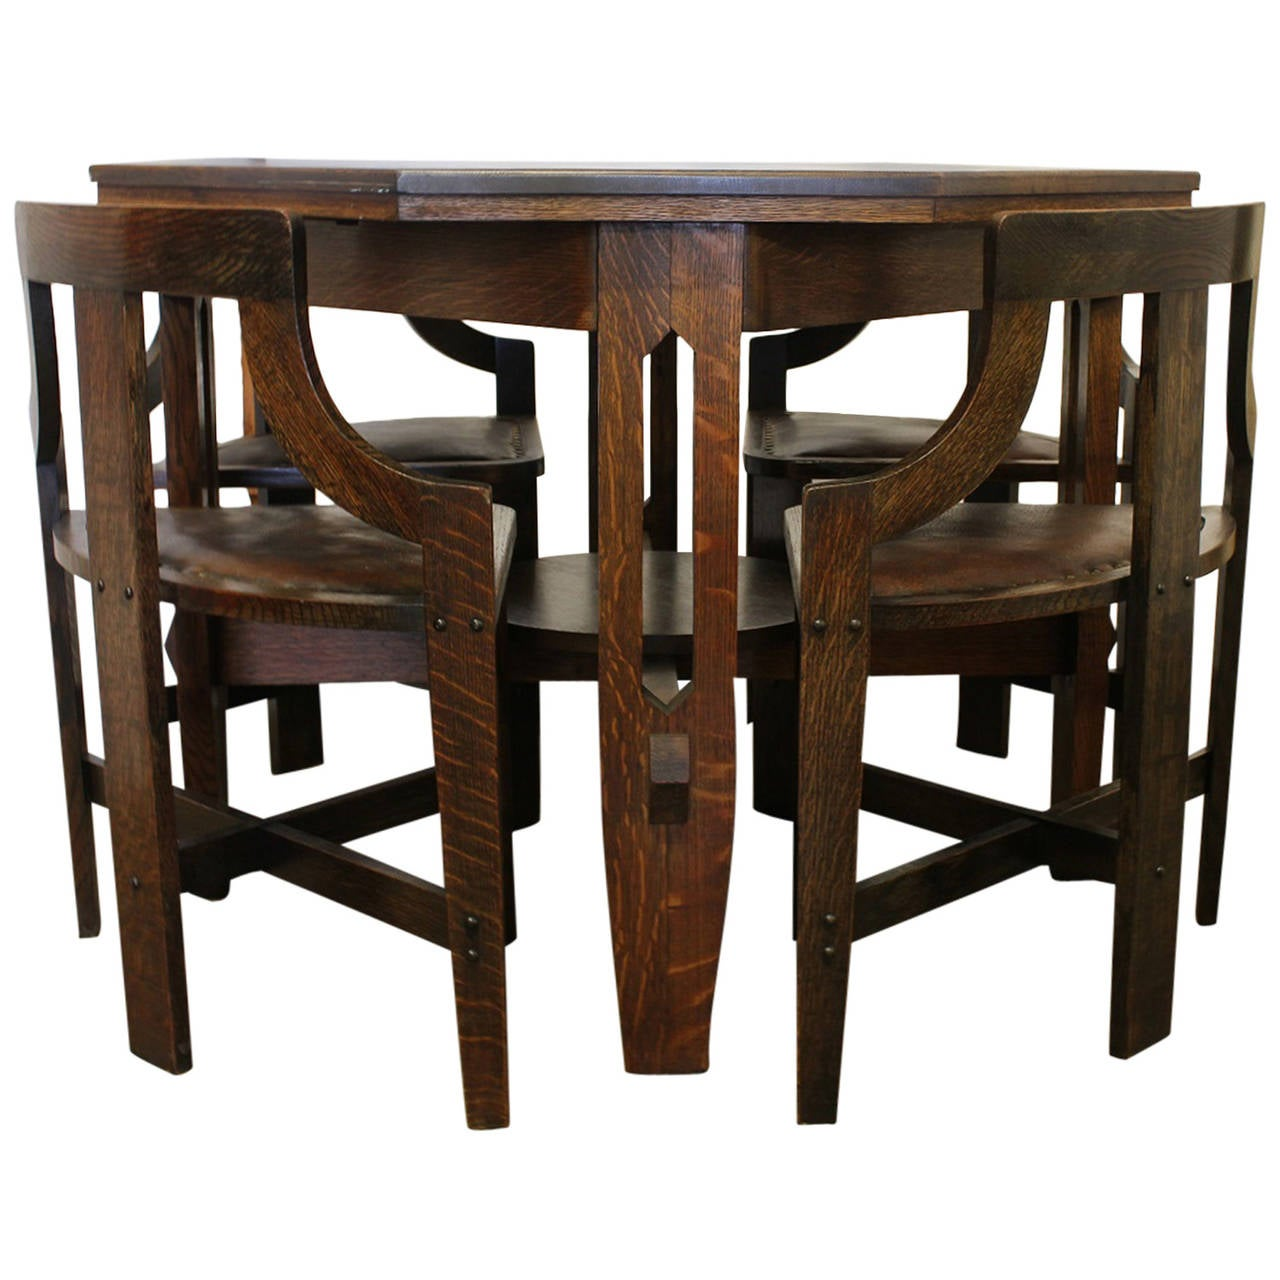 Rare arts and crafts game table and chairs at 1stdibs for 10 games in 1 table